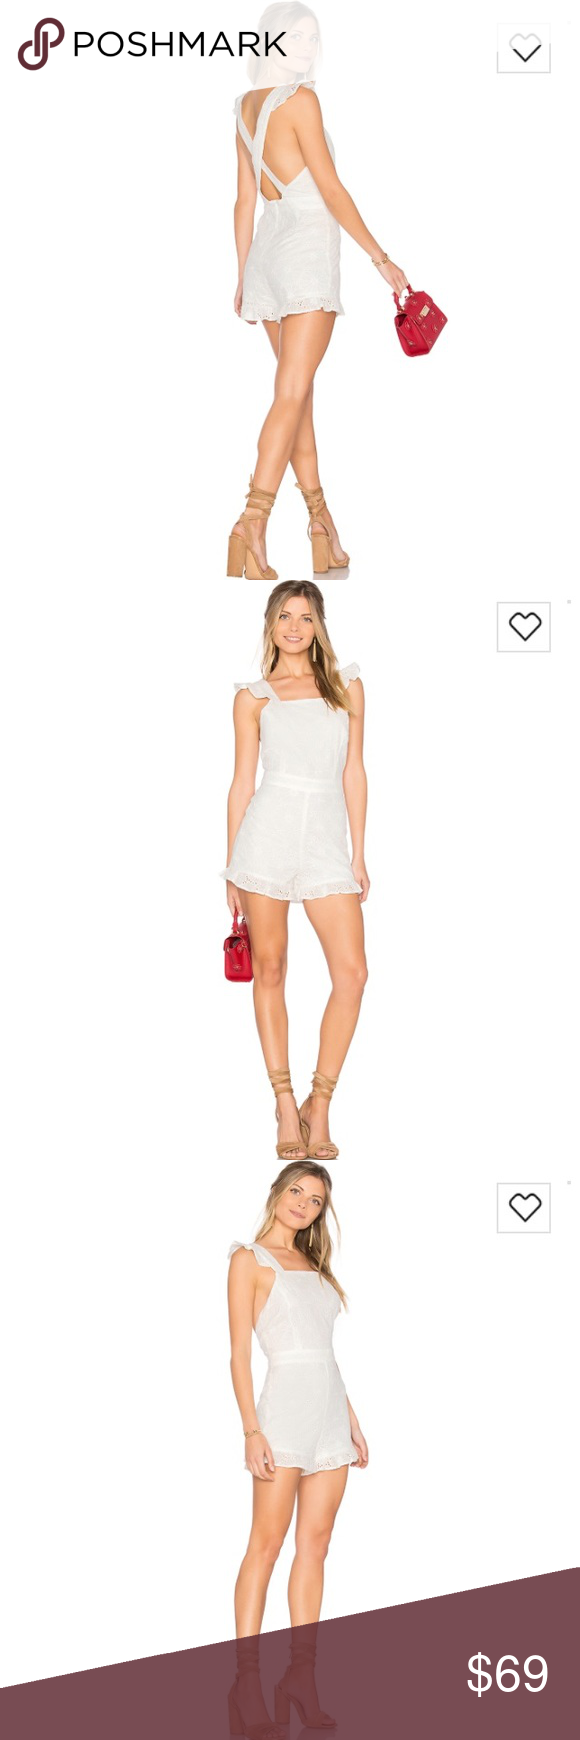 2ec84ac41c4 JOA Ruffle Shoulder Eyelet Romper Off White Small JOA Ruffle Shoulder  Eyelet Romper In White Size